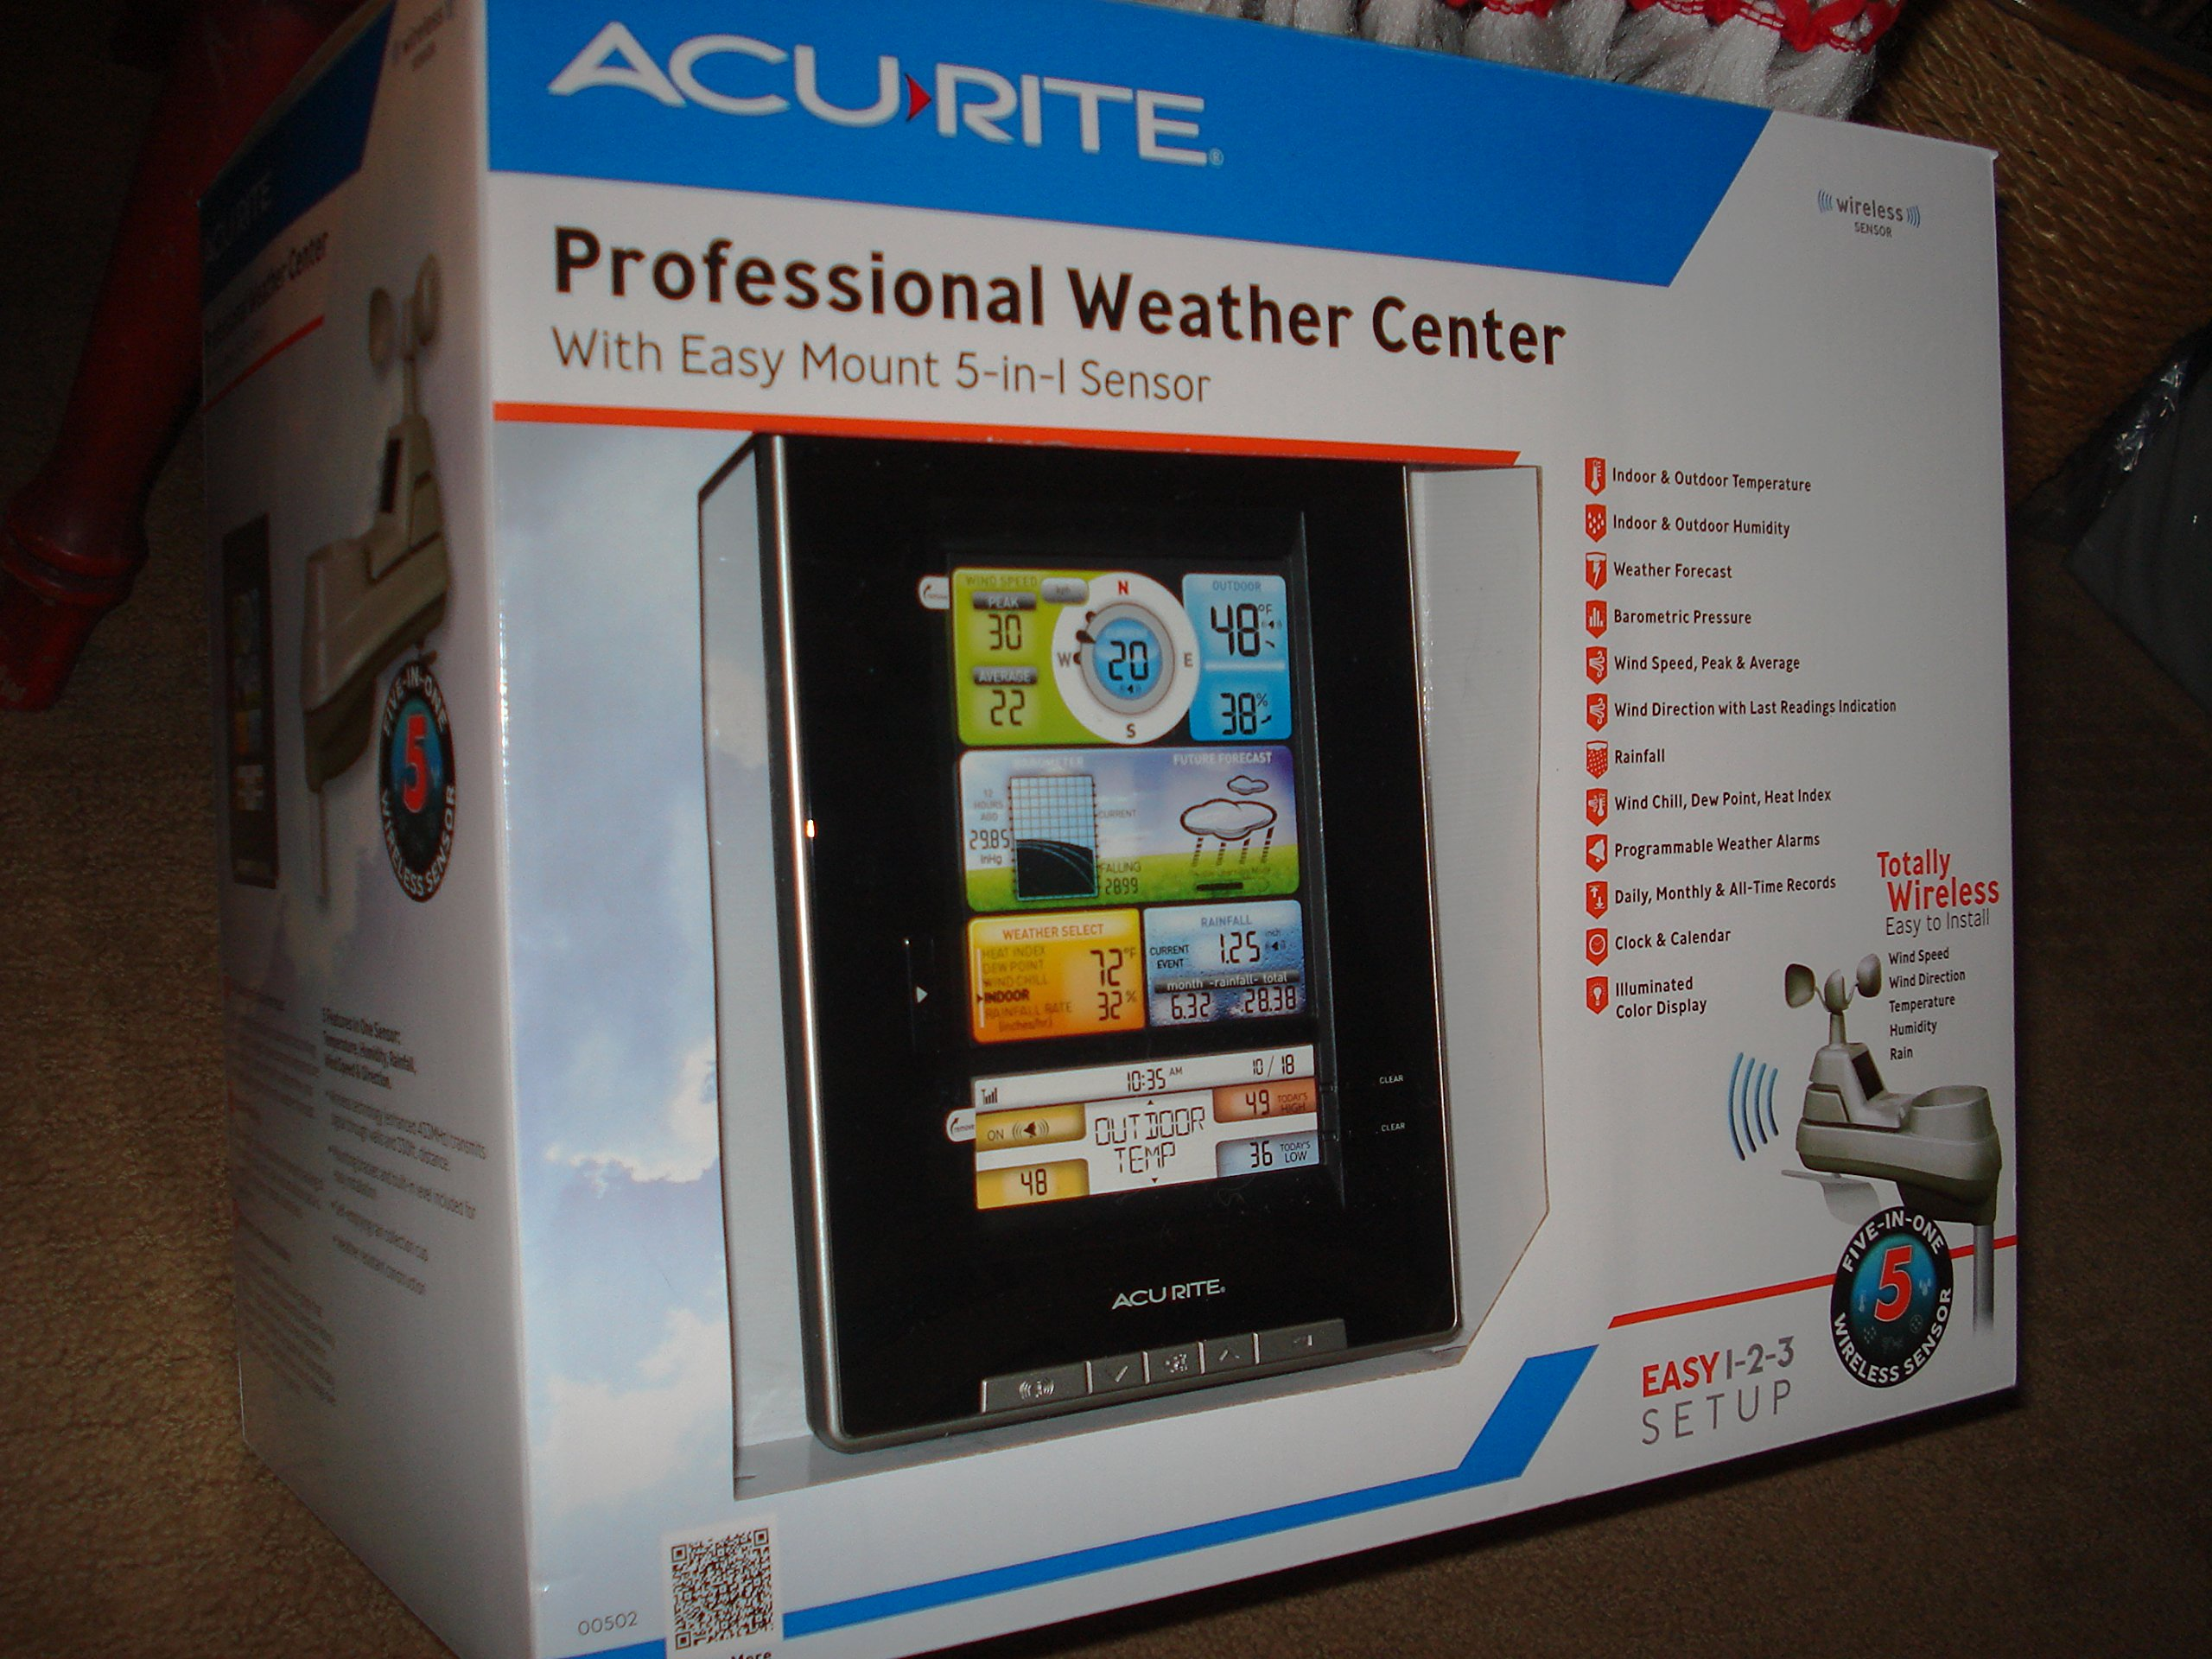 Professional Weather Center with Easy Mount 5-in-1 Sensor